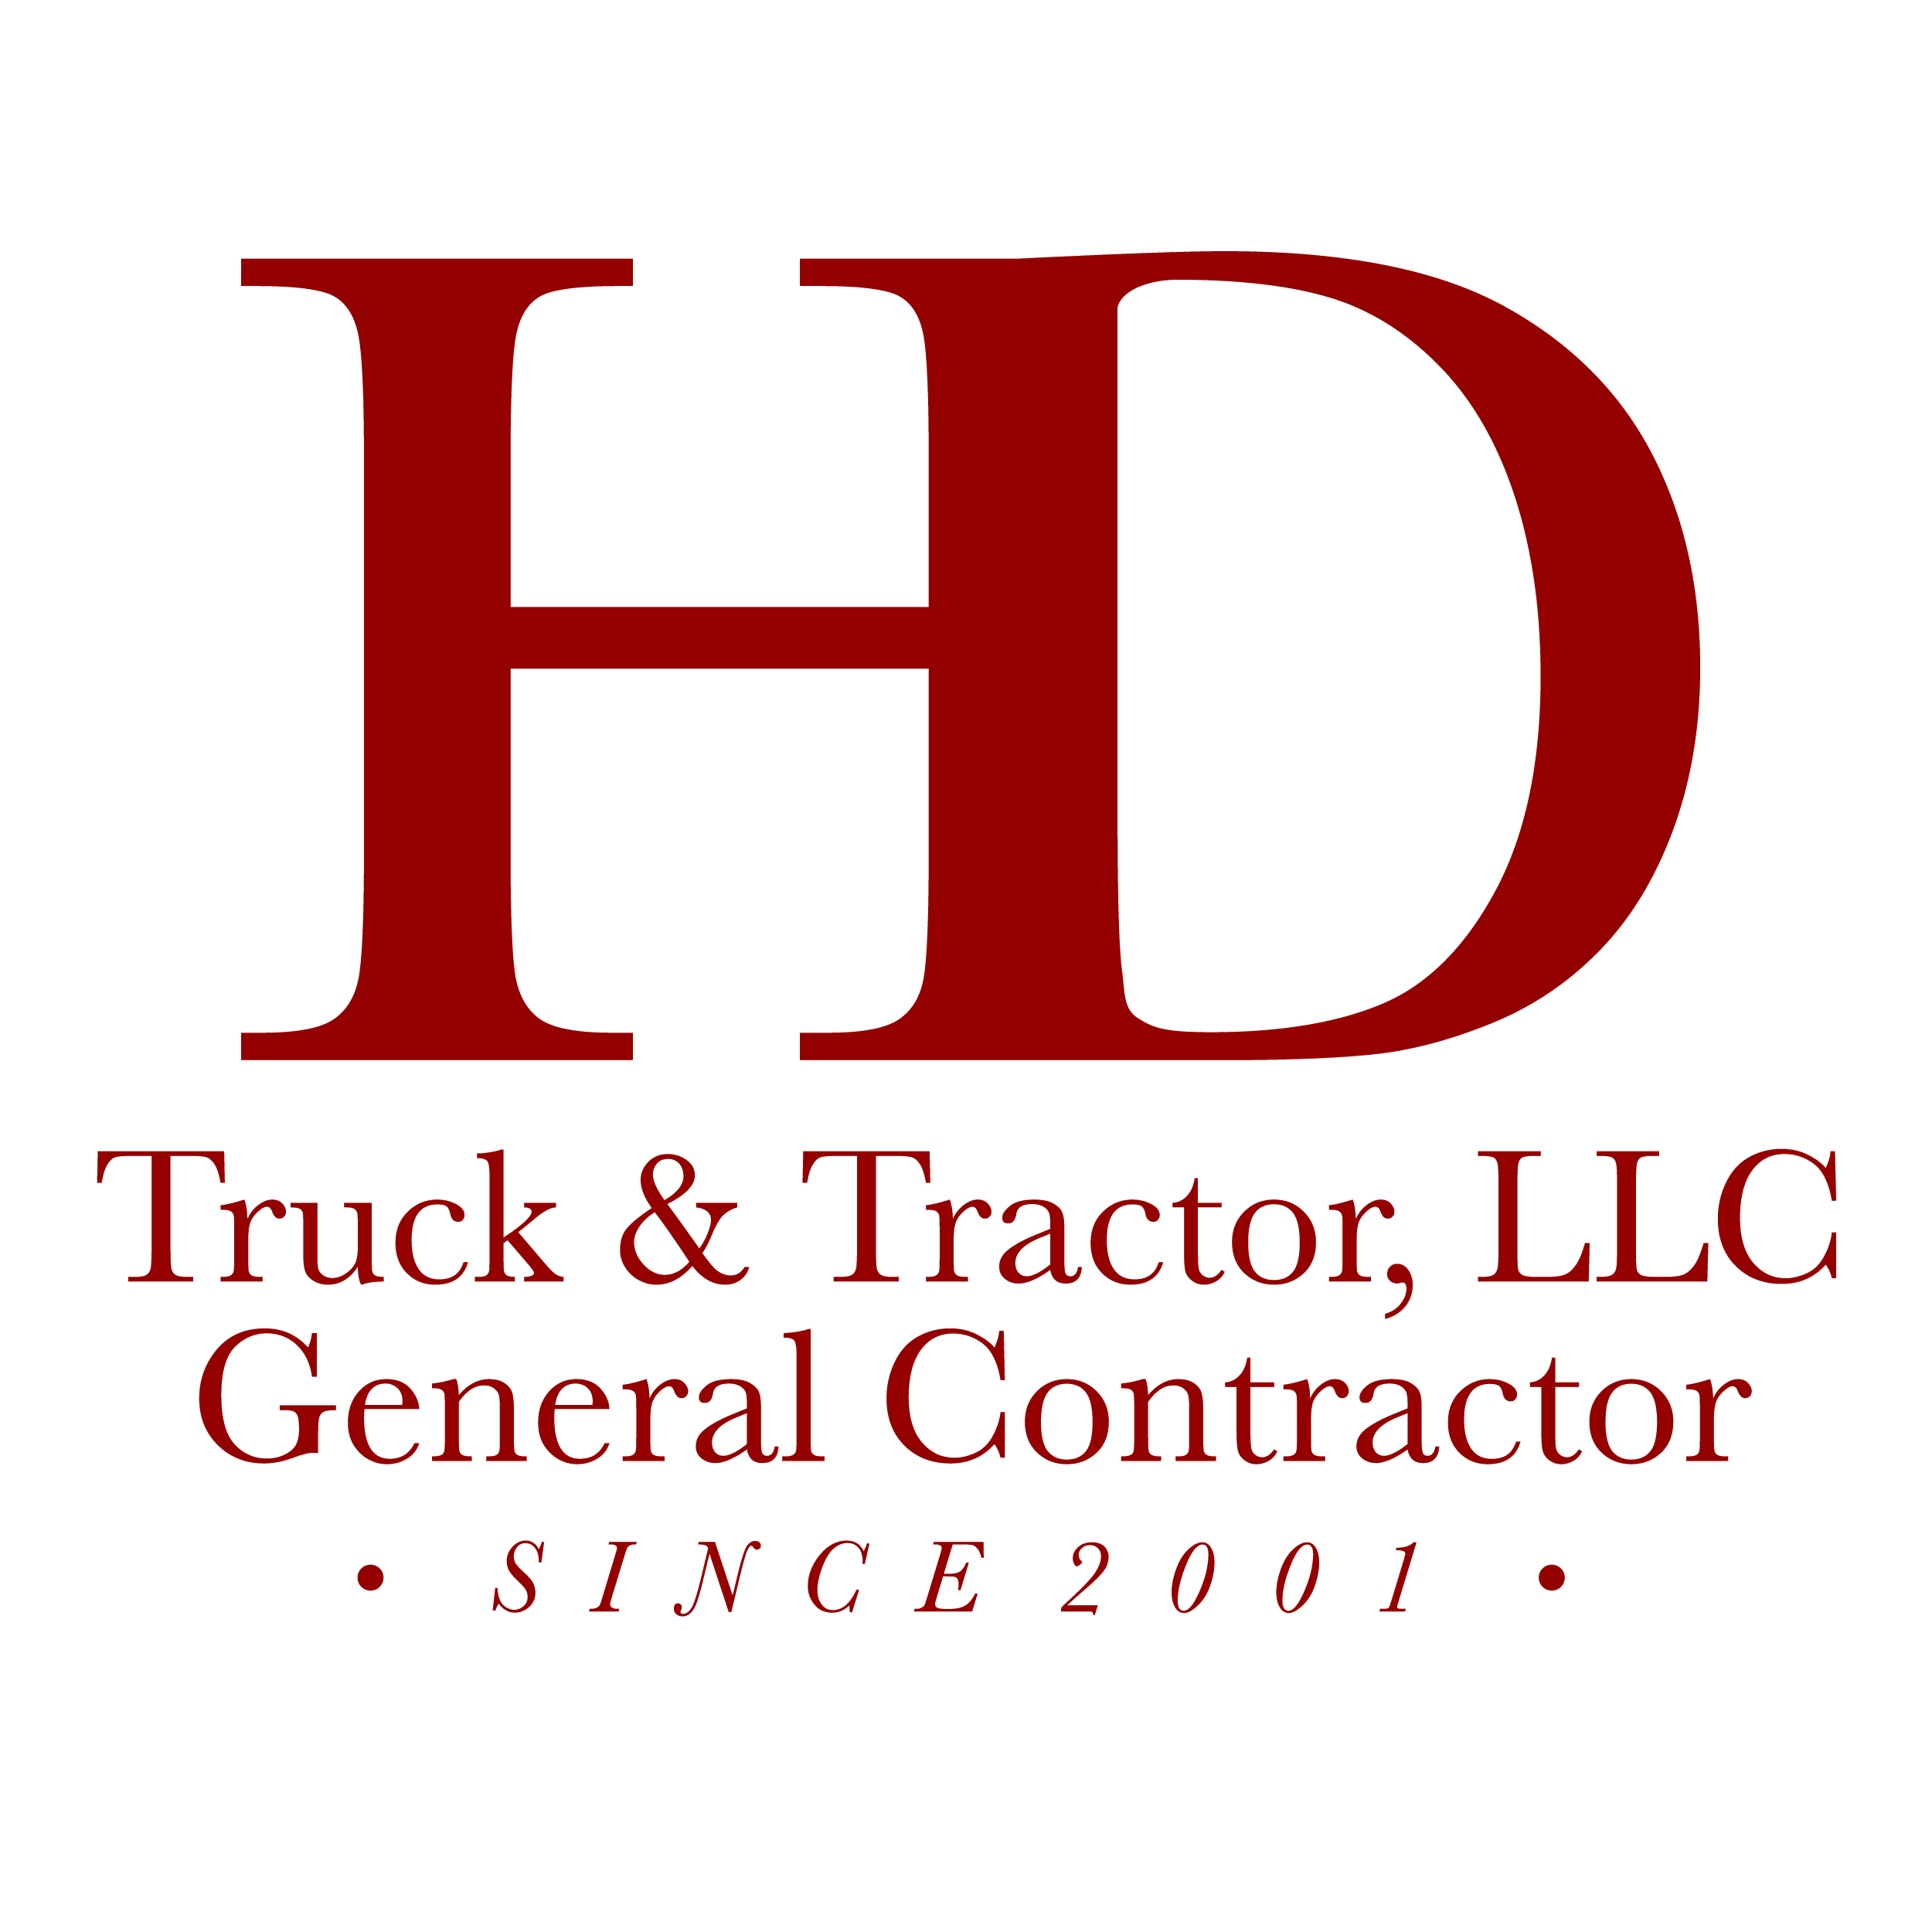 HD Truck & Tractor